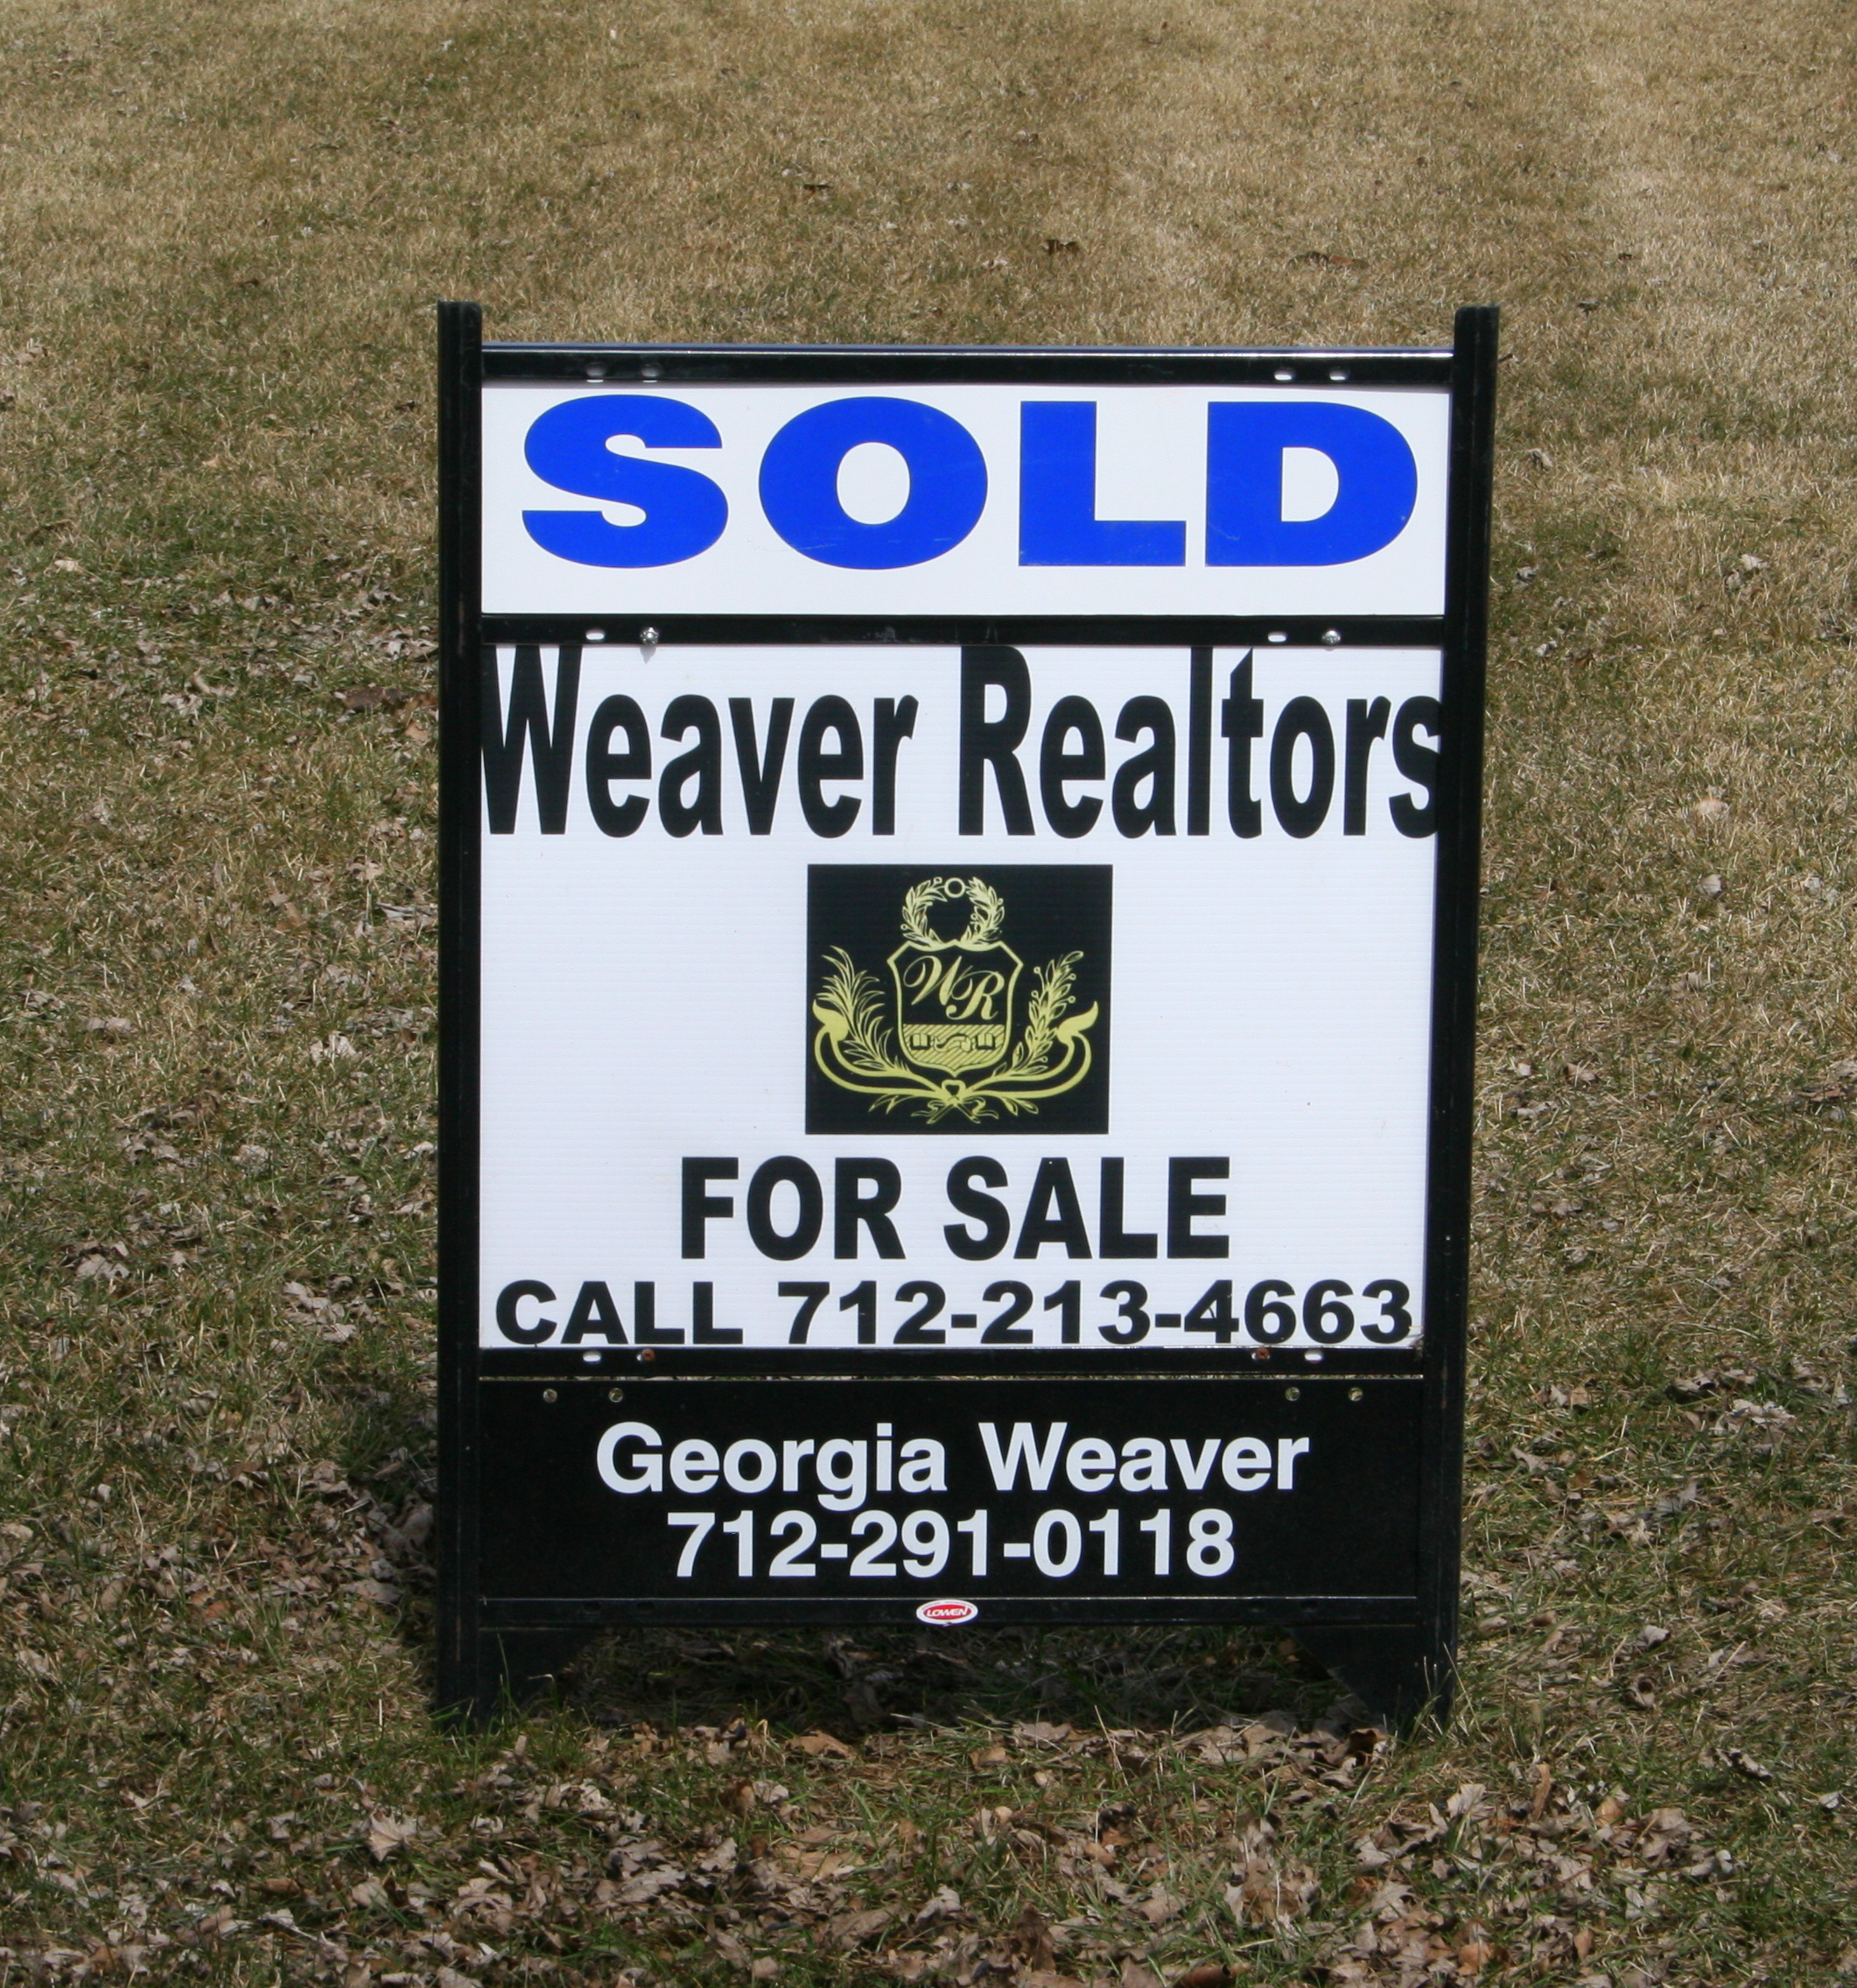 Weaver Realtors gets results!